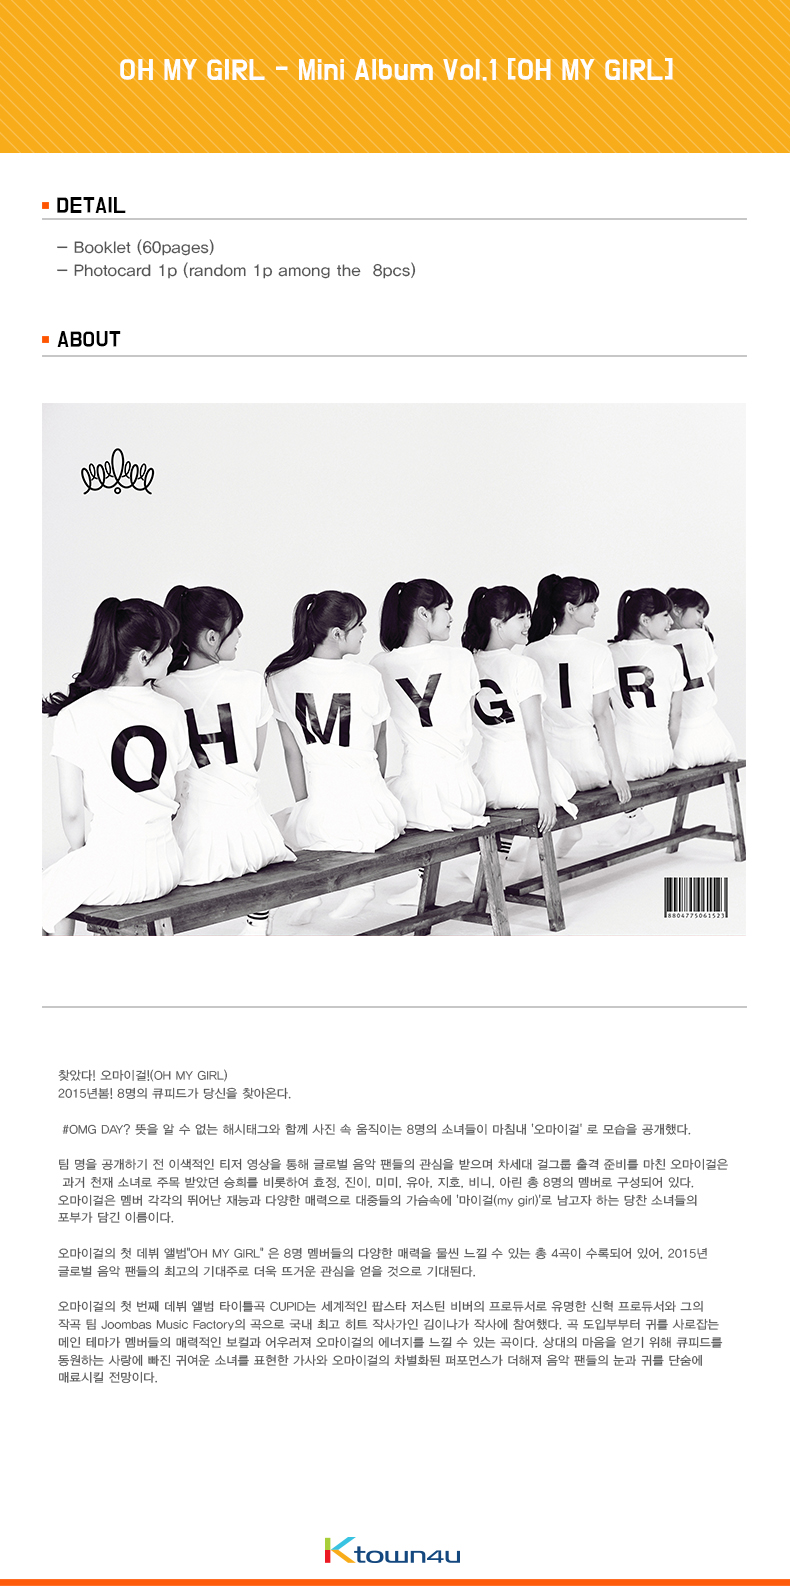 OH MY GIRL - Mini Album Vol.1 [OH MY GIRL]